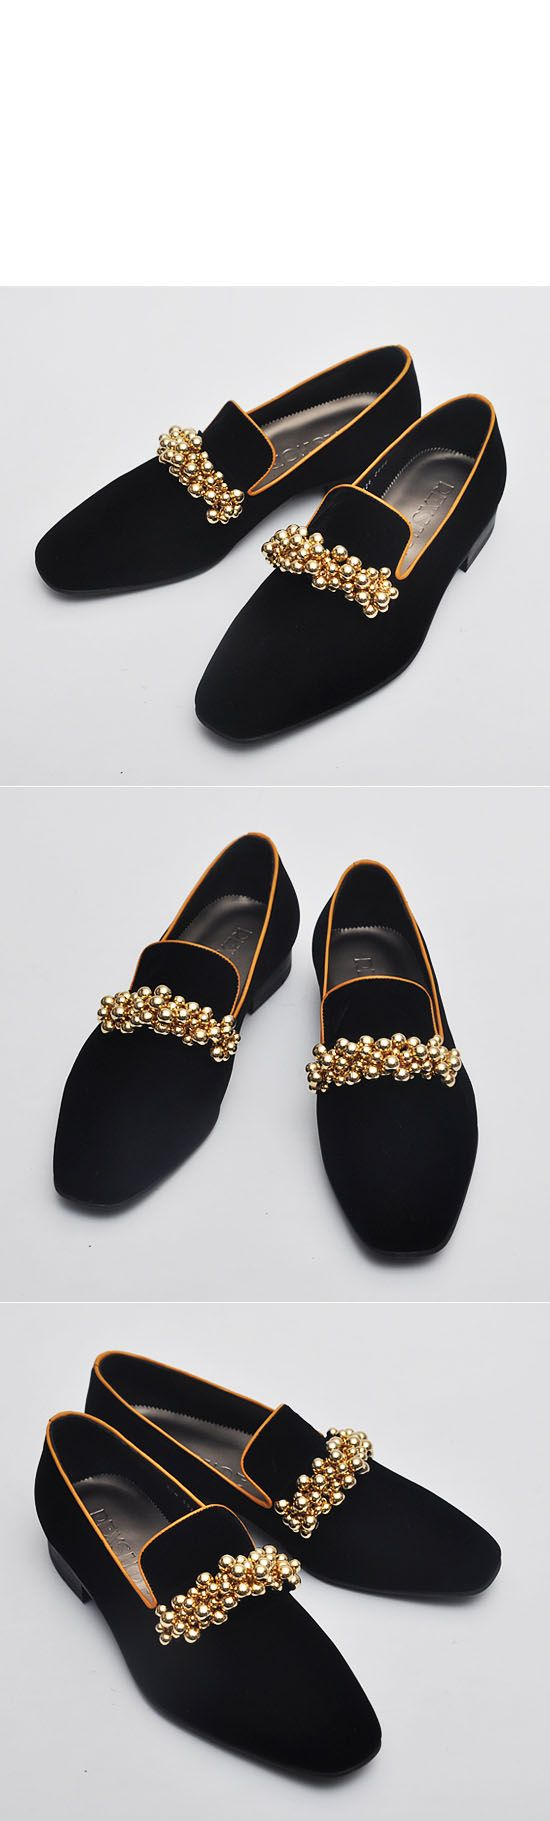 Shoes :: Lux Gold Tasselissimo Velvet-Shoes 96 - Mens Fashion Clothing For An Attractive Guy Look